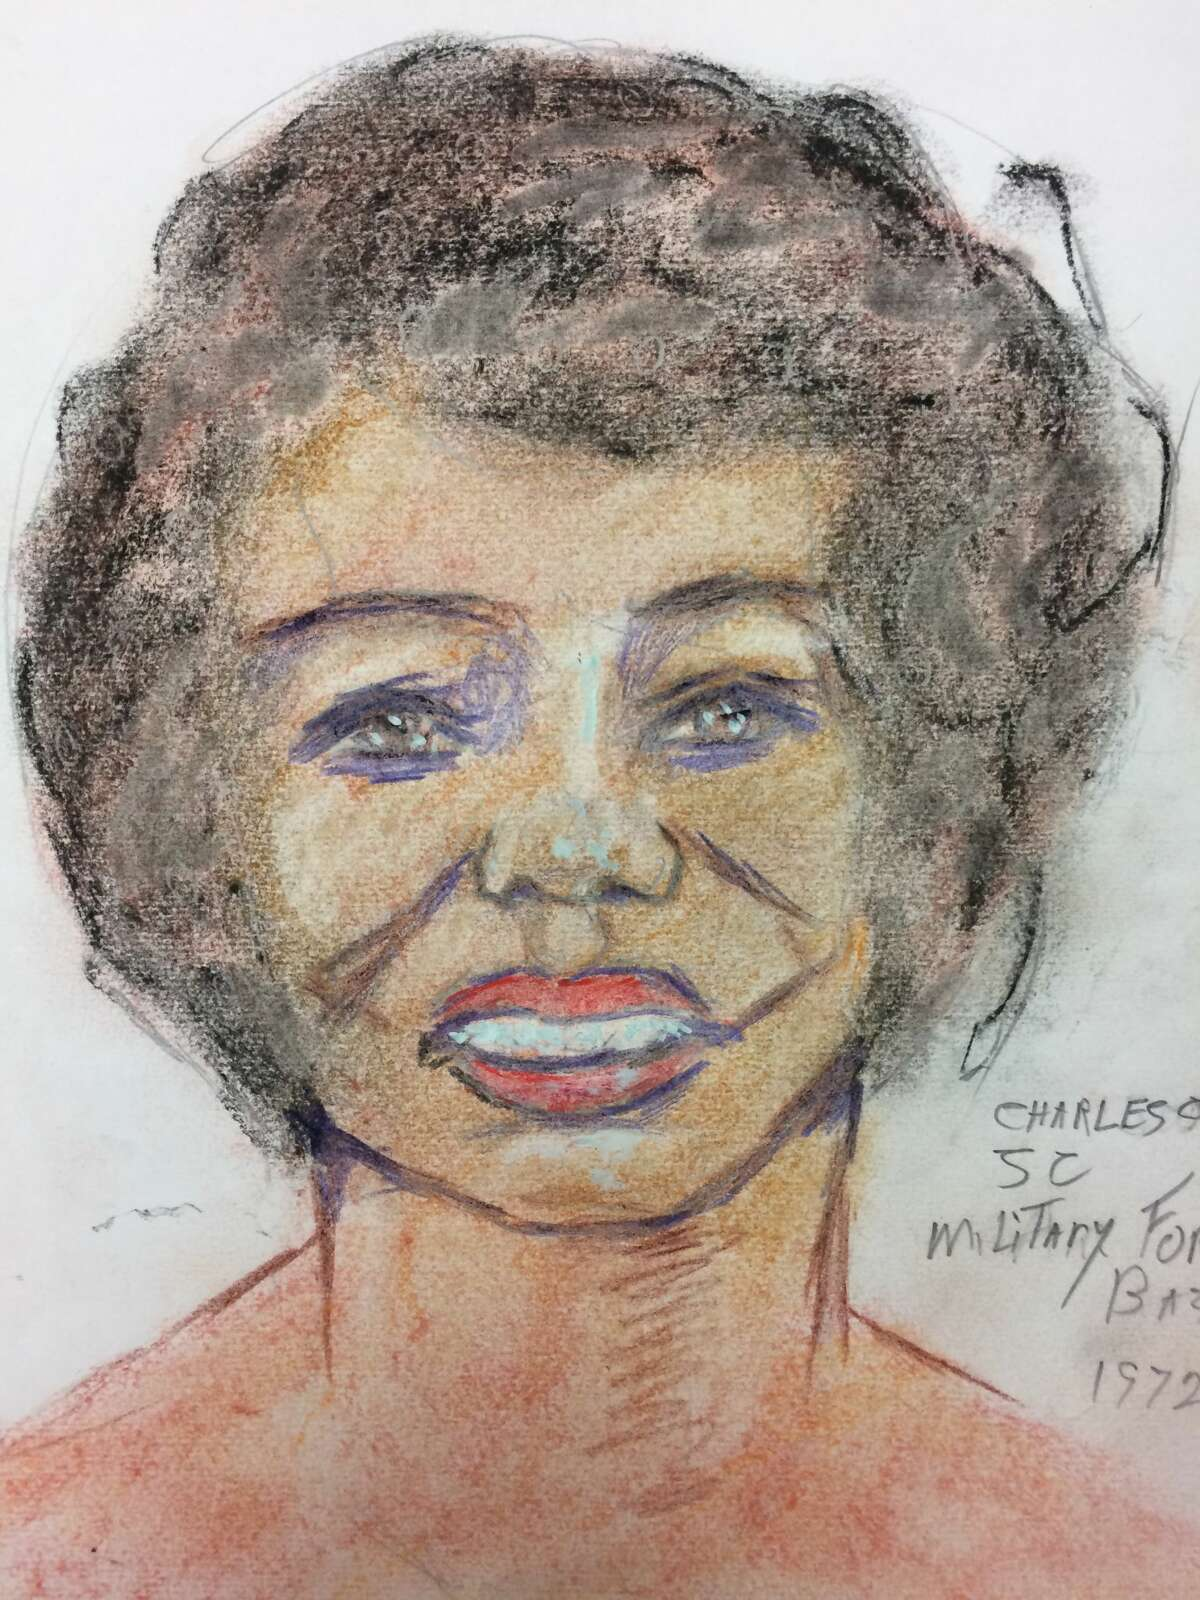 Charleston, South Carolina Unmatched Confession: Black female, age 28, killed between 1977 and 1982.